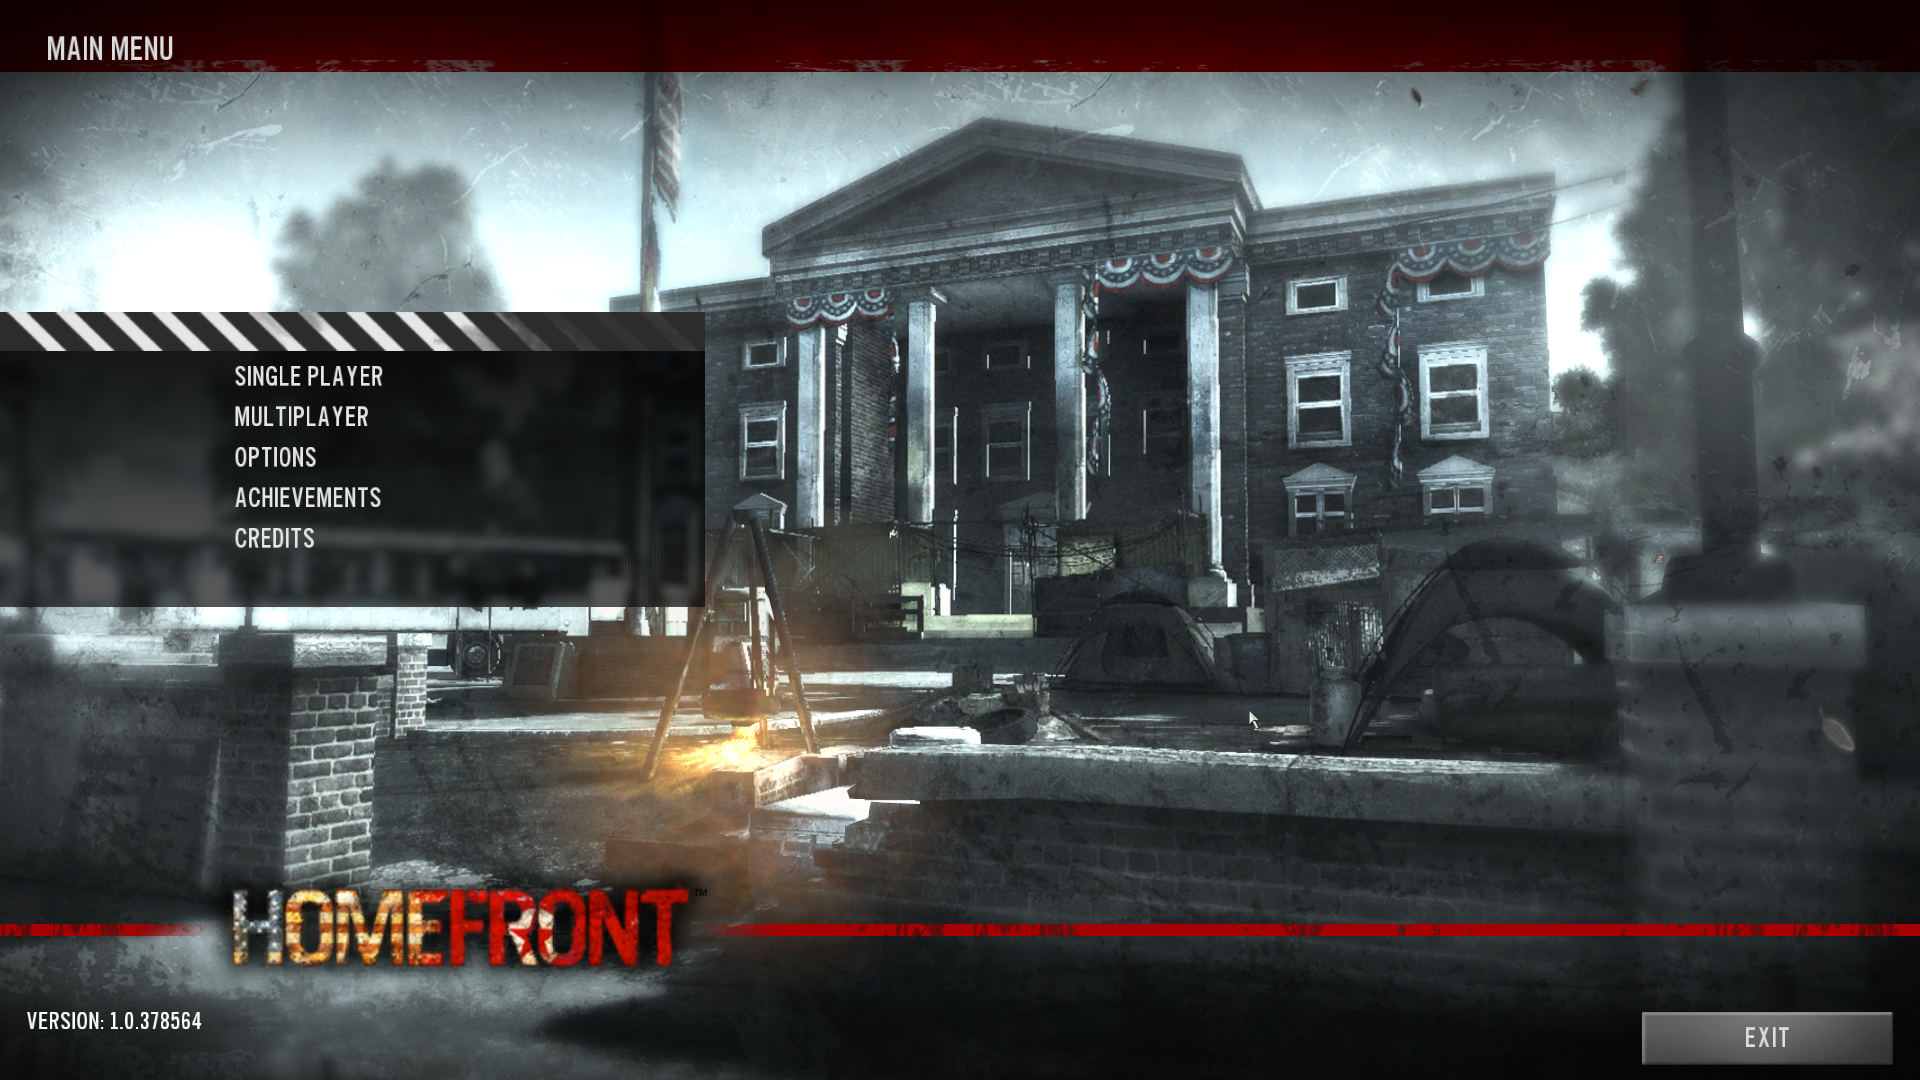 Homefront Windows The main menu